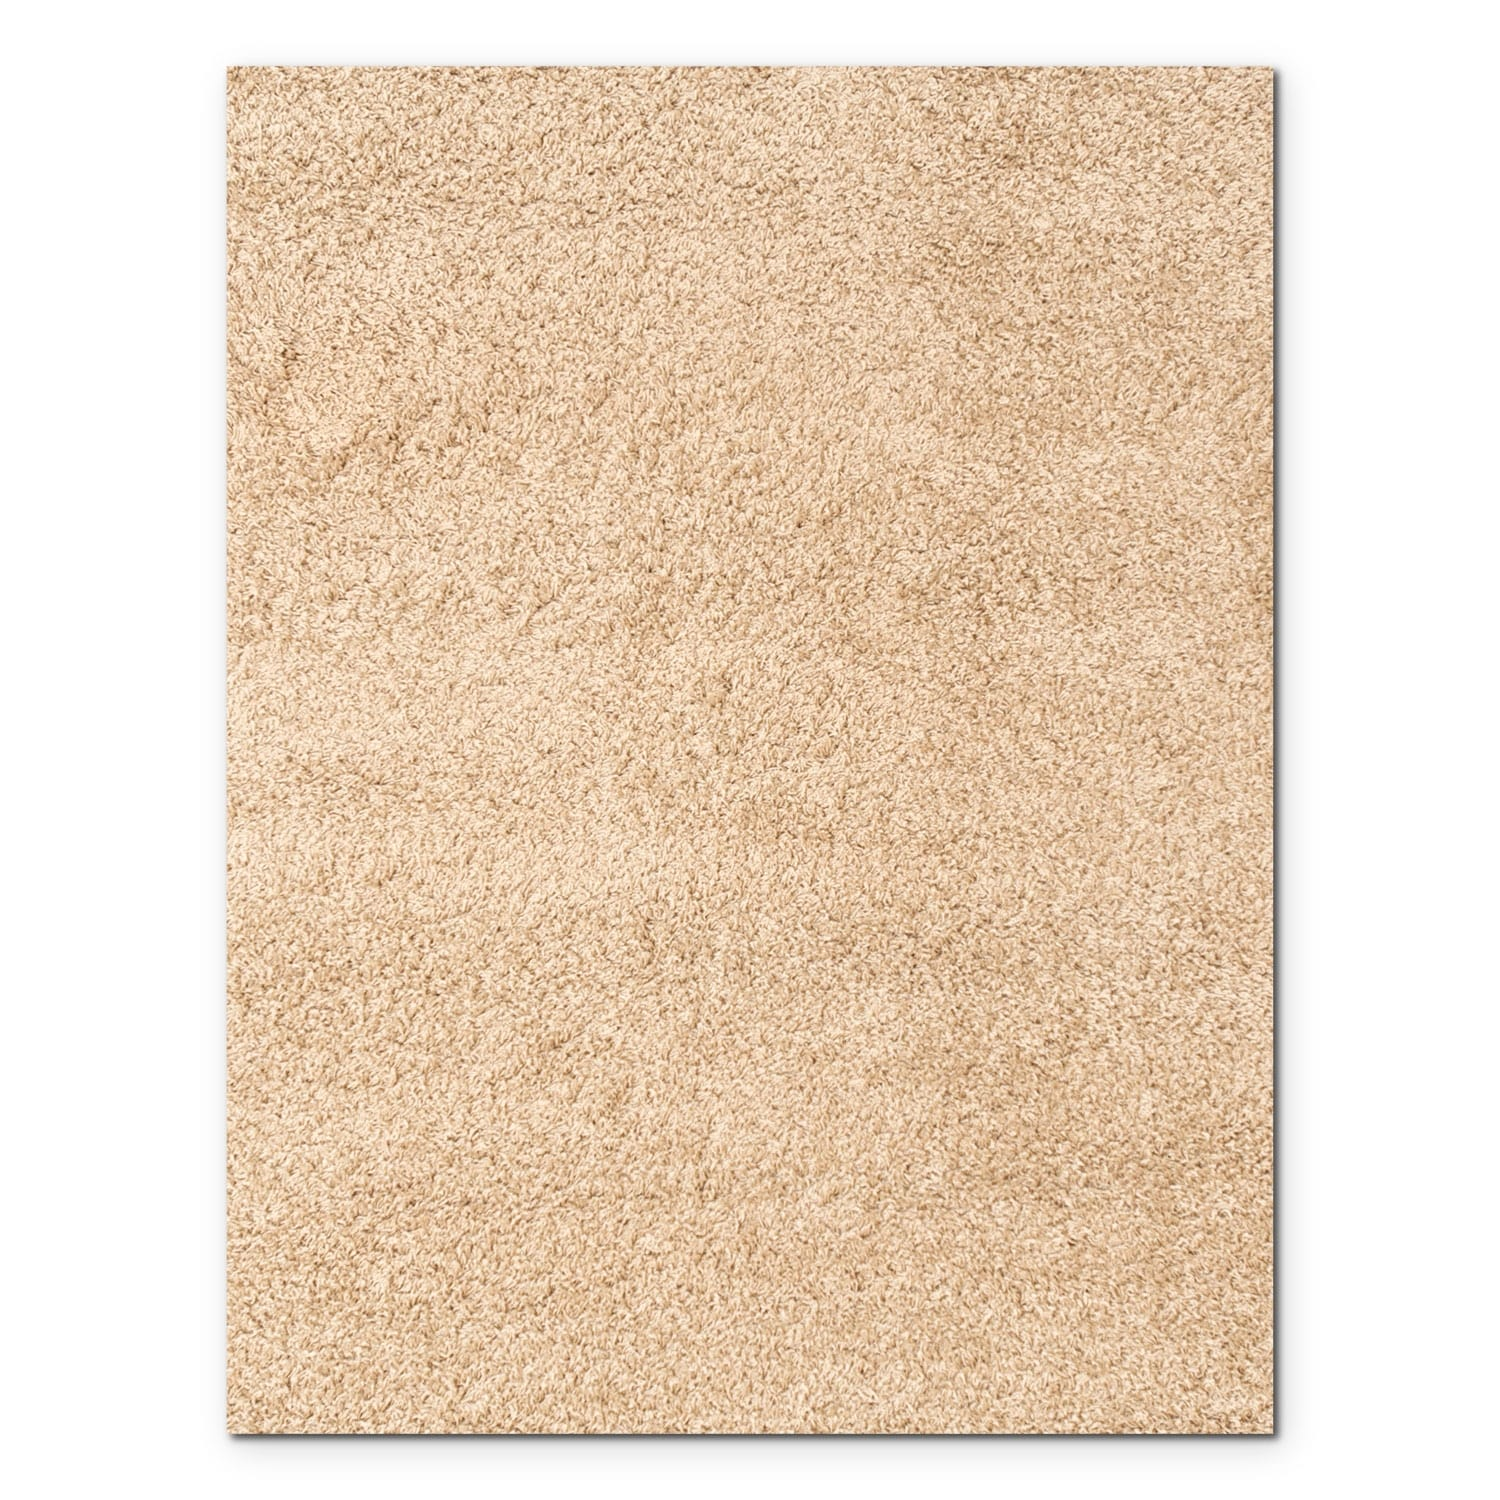 Rugs - Domino Taupe Shag Area Rug (5' x 8')